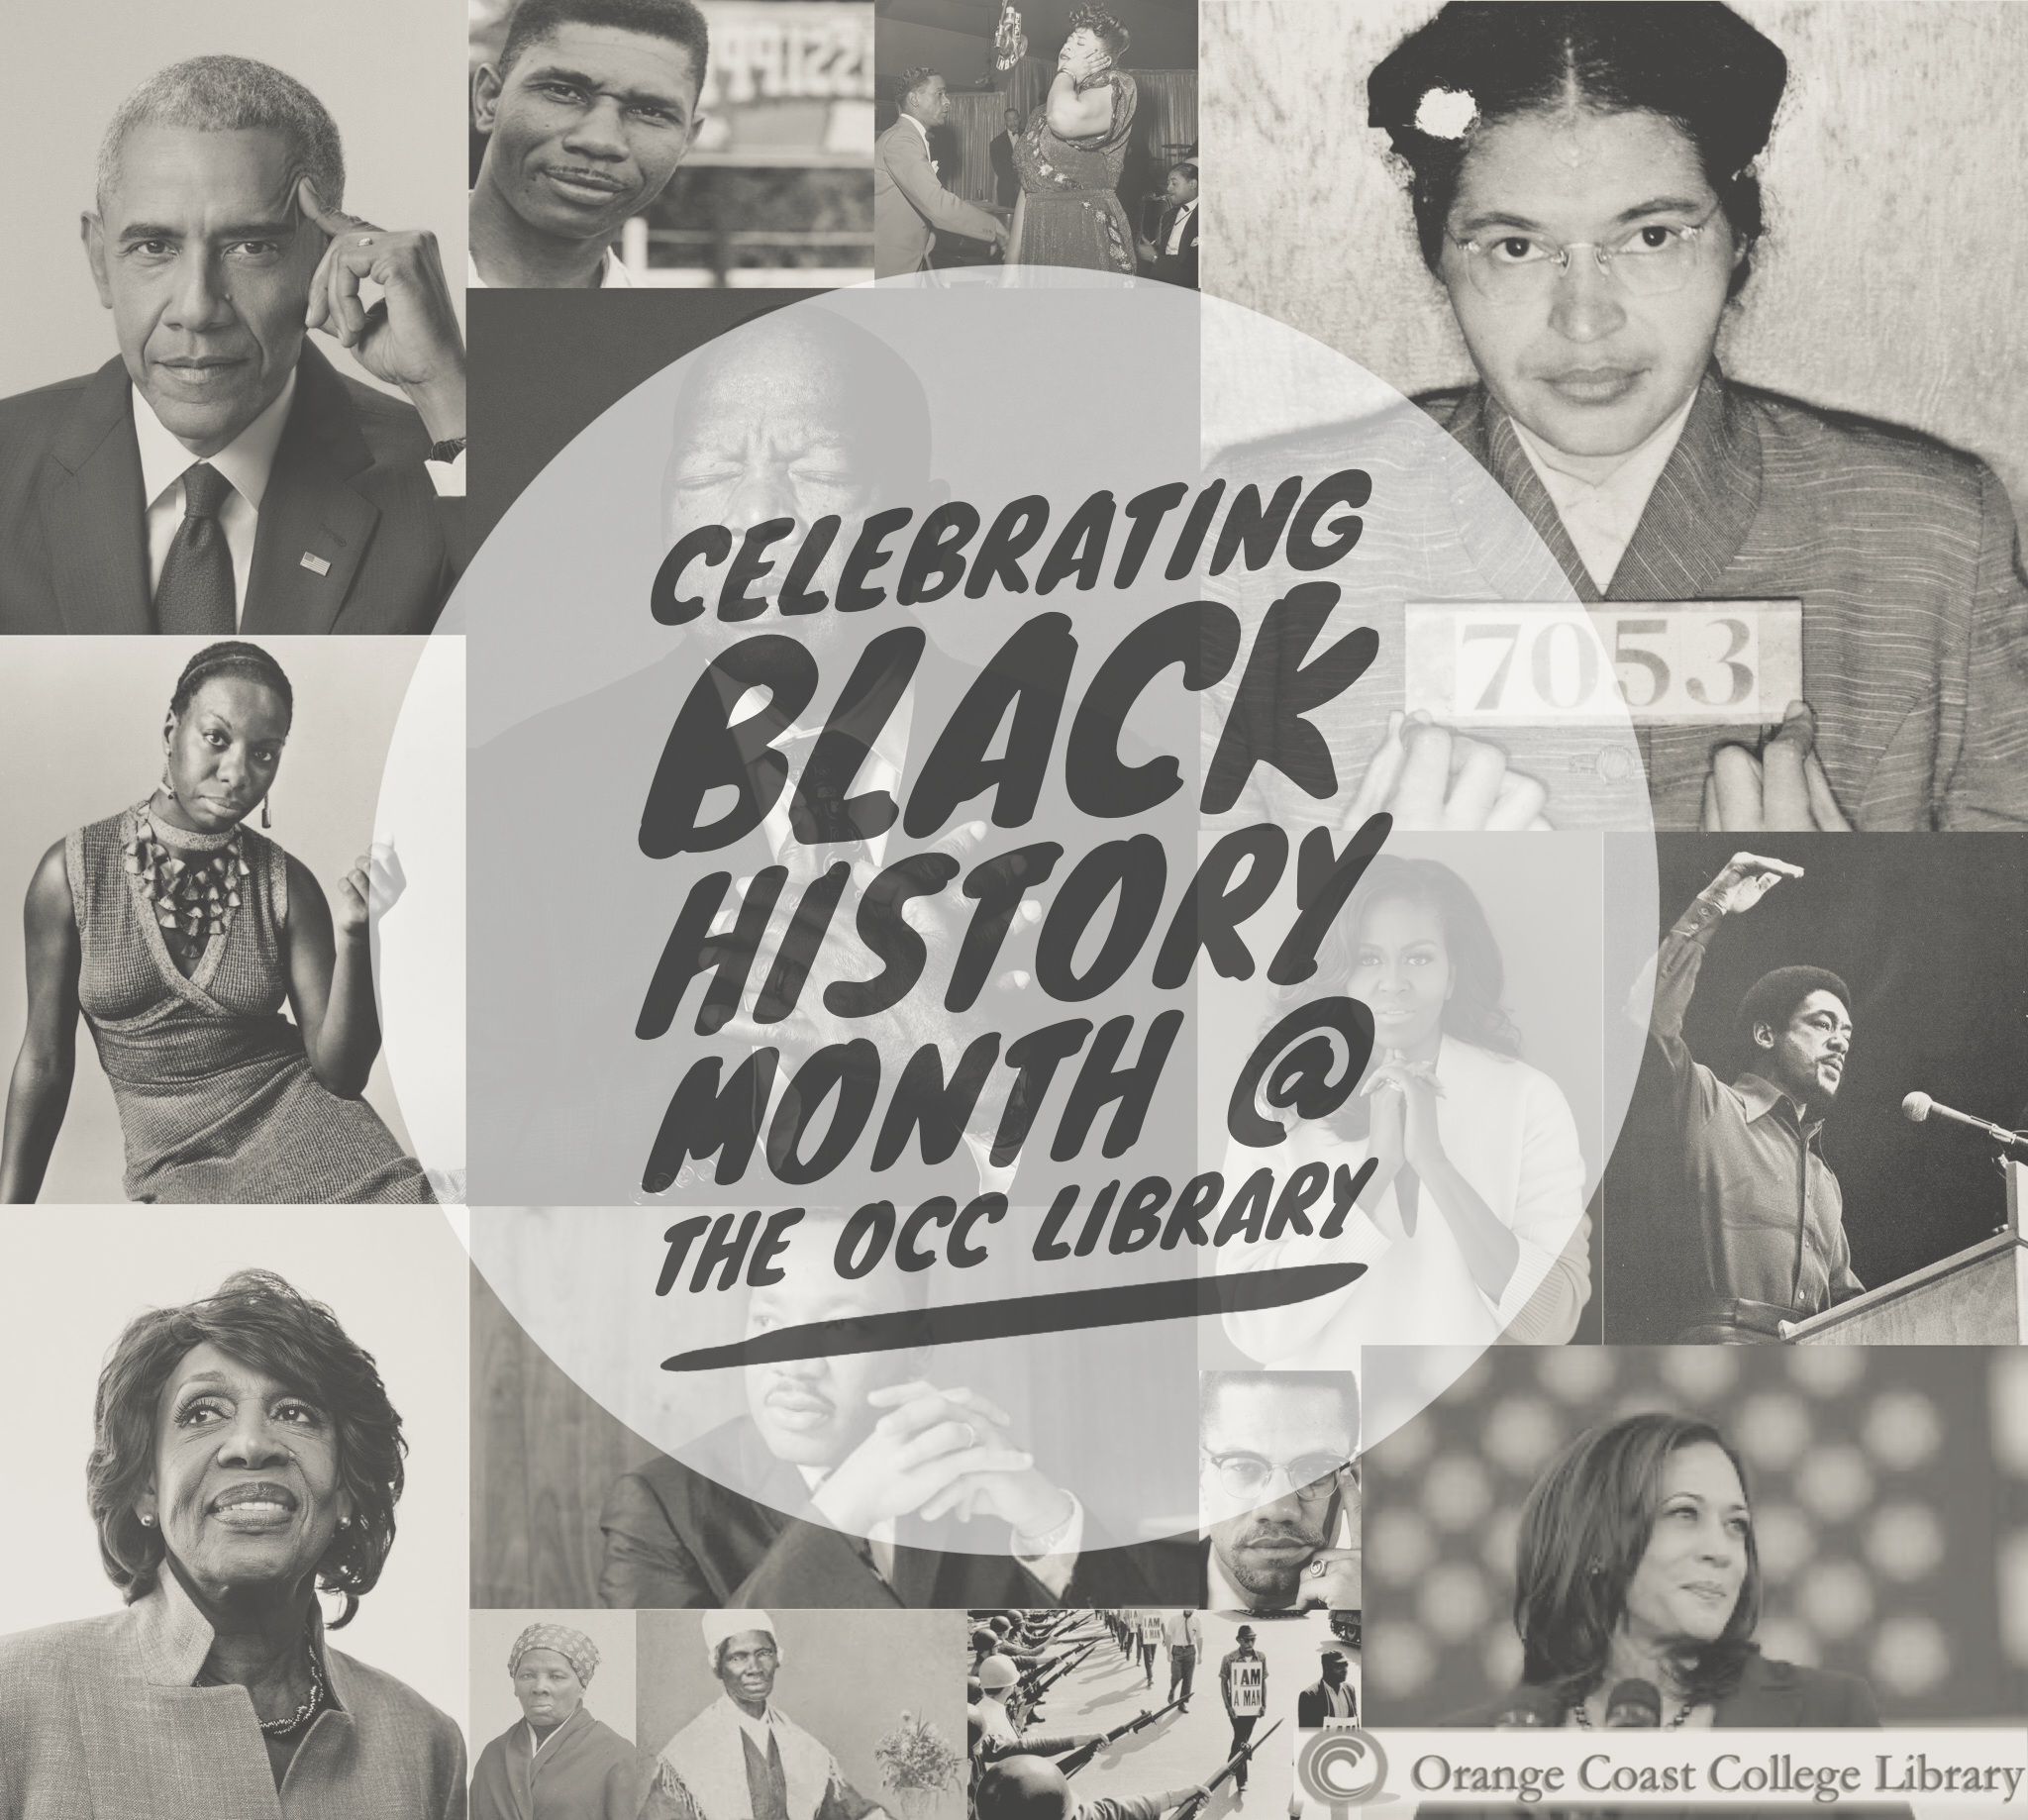 Image of Black icons, politicians, musicians. Text Reads Celebrating Black History Month @ the OCC Library